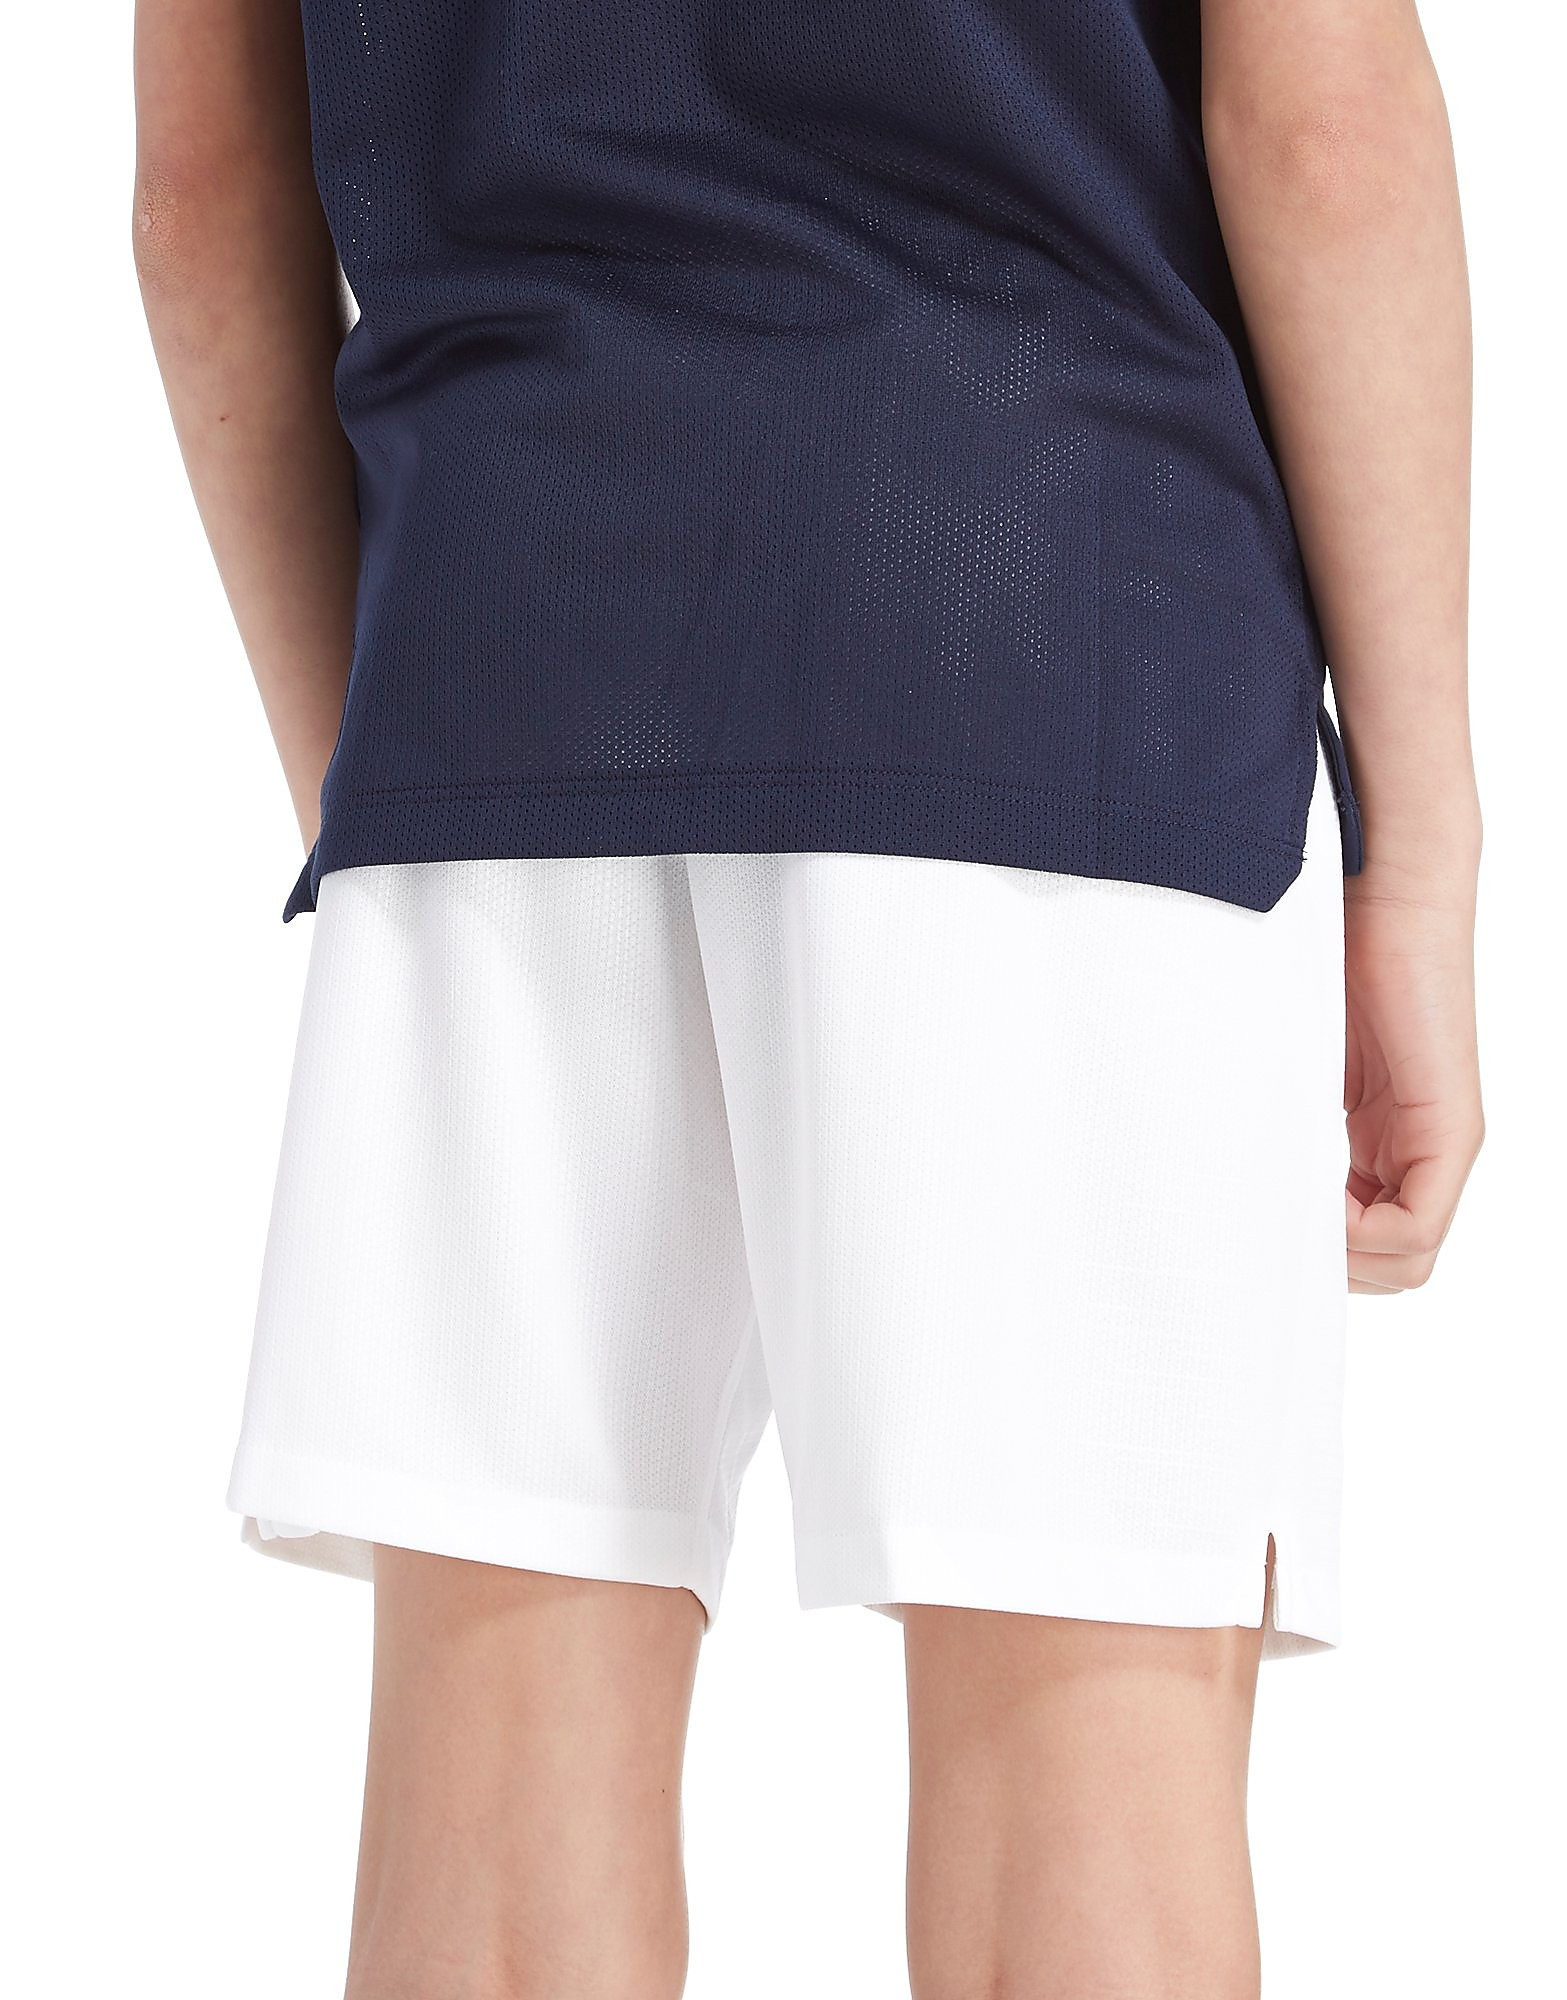 Nike Francia 2018 Home Shorts Junior